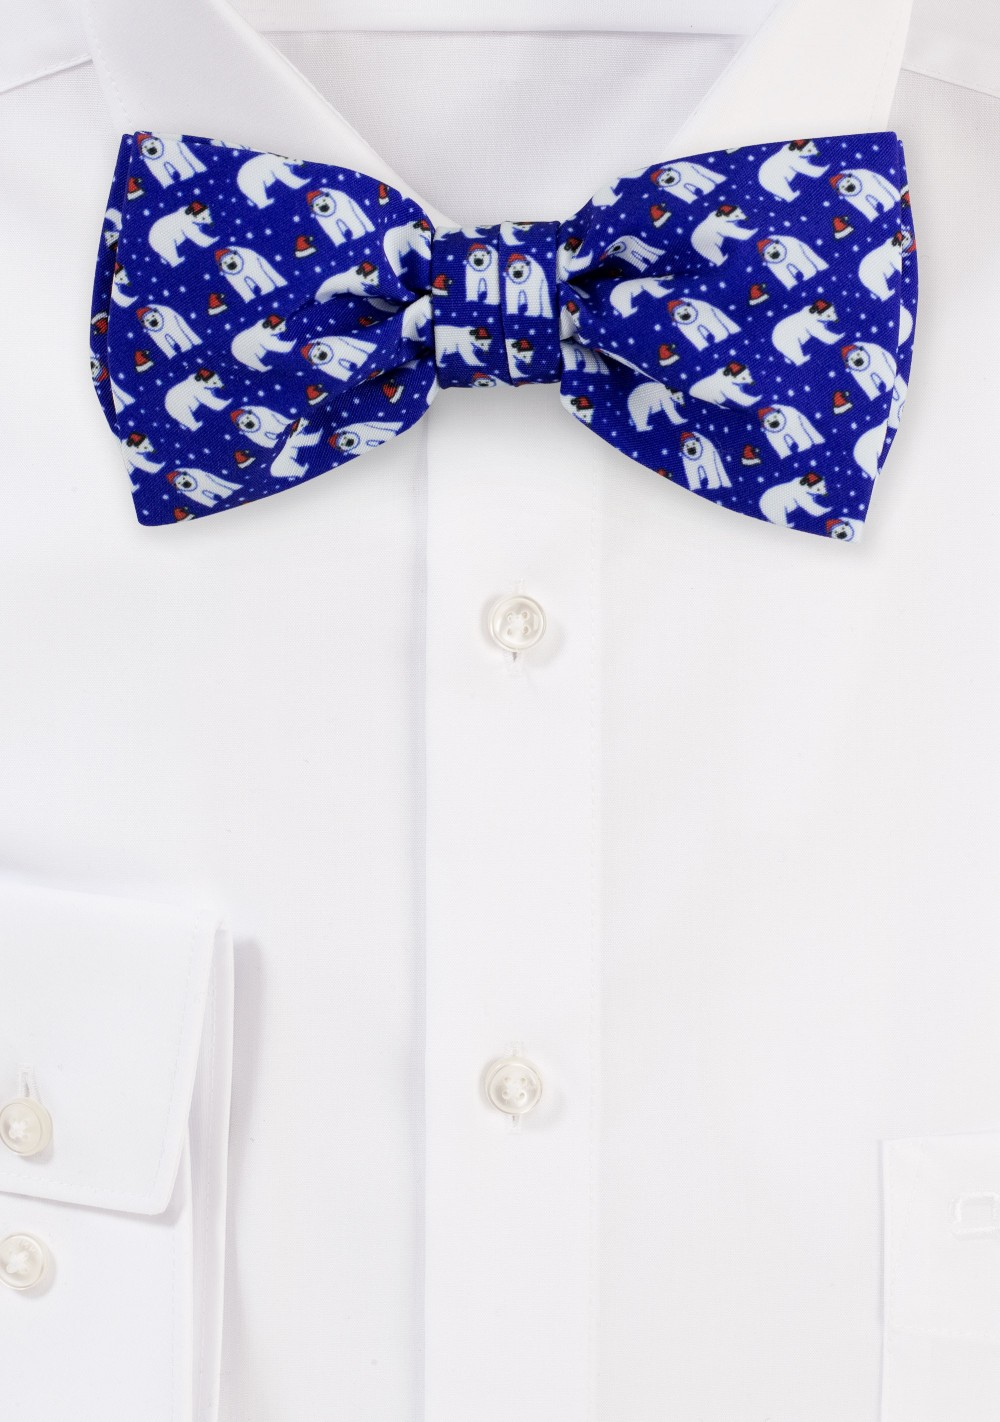 Navy Blue Bow Tie with Polar Bears